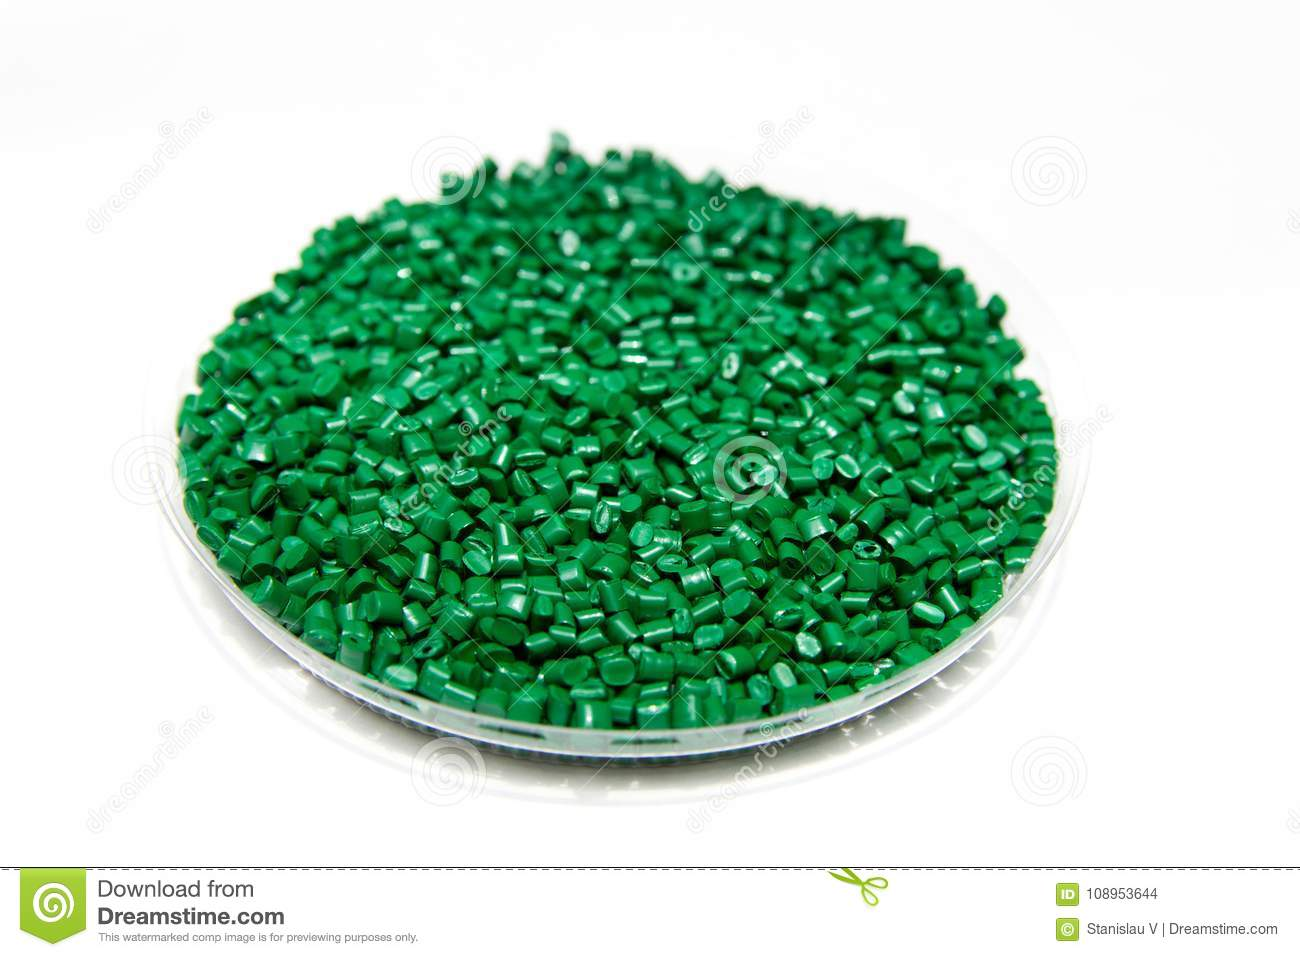 The plastic granules. Dye for polypropylene, polystyrene granules into a measuring container.